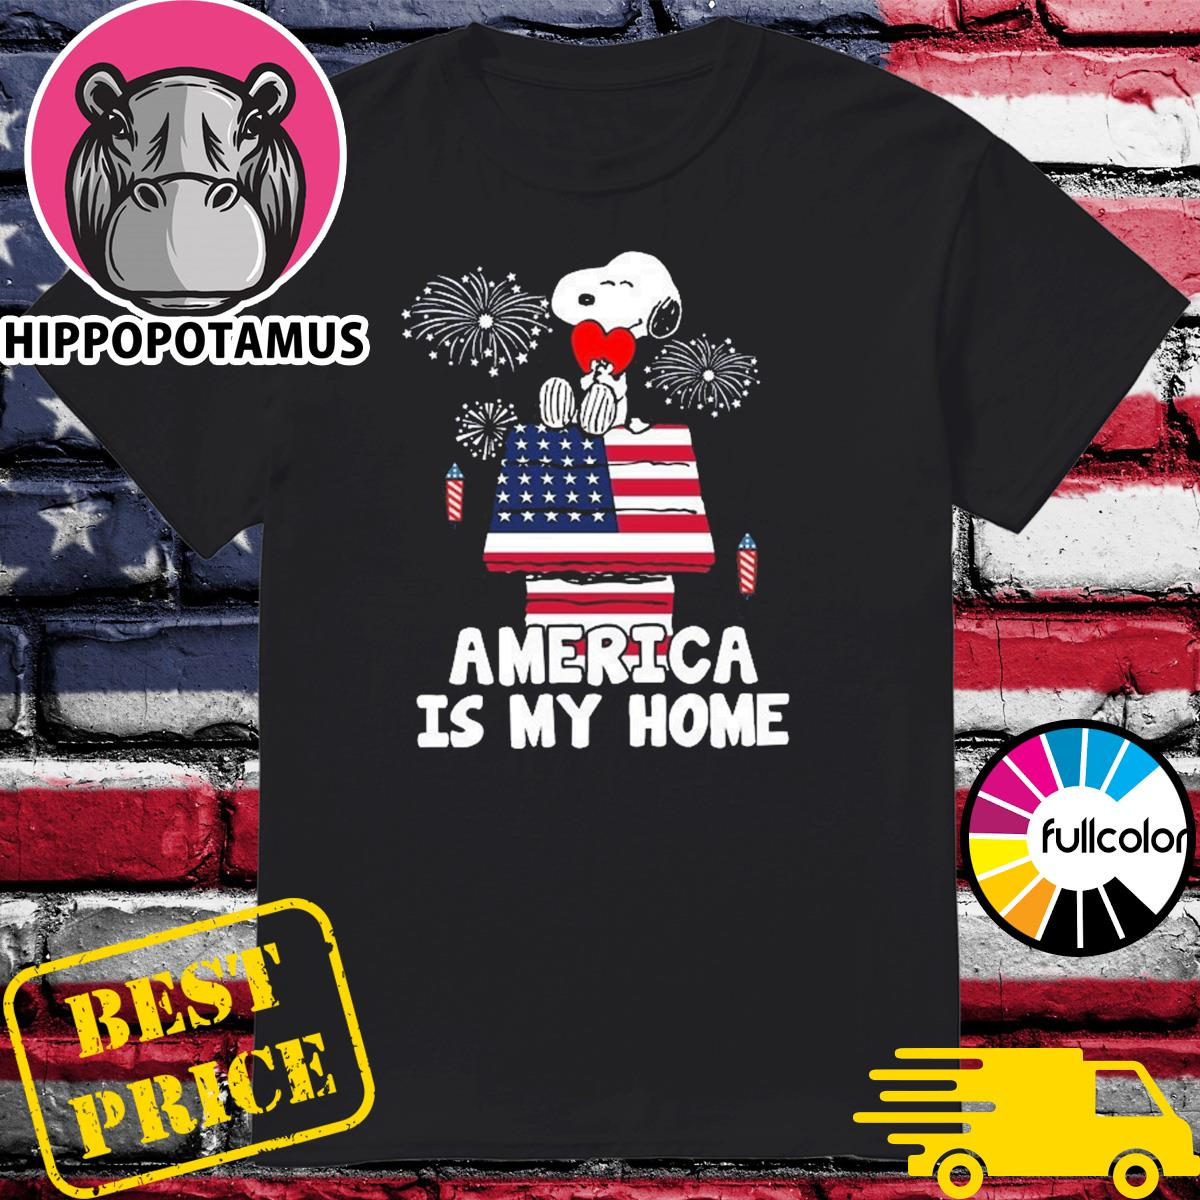 Snoopy Hug Heart Emerica Is My Home Funny 4th Of July, Independence Day Shirt